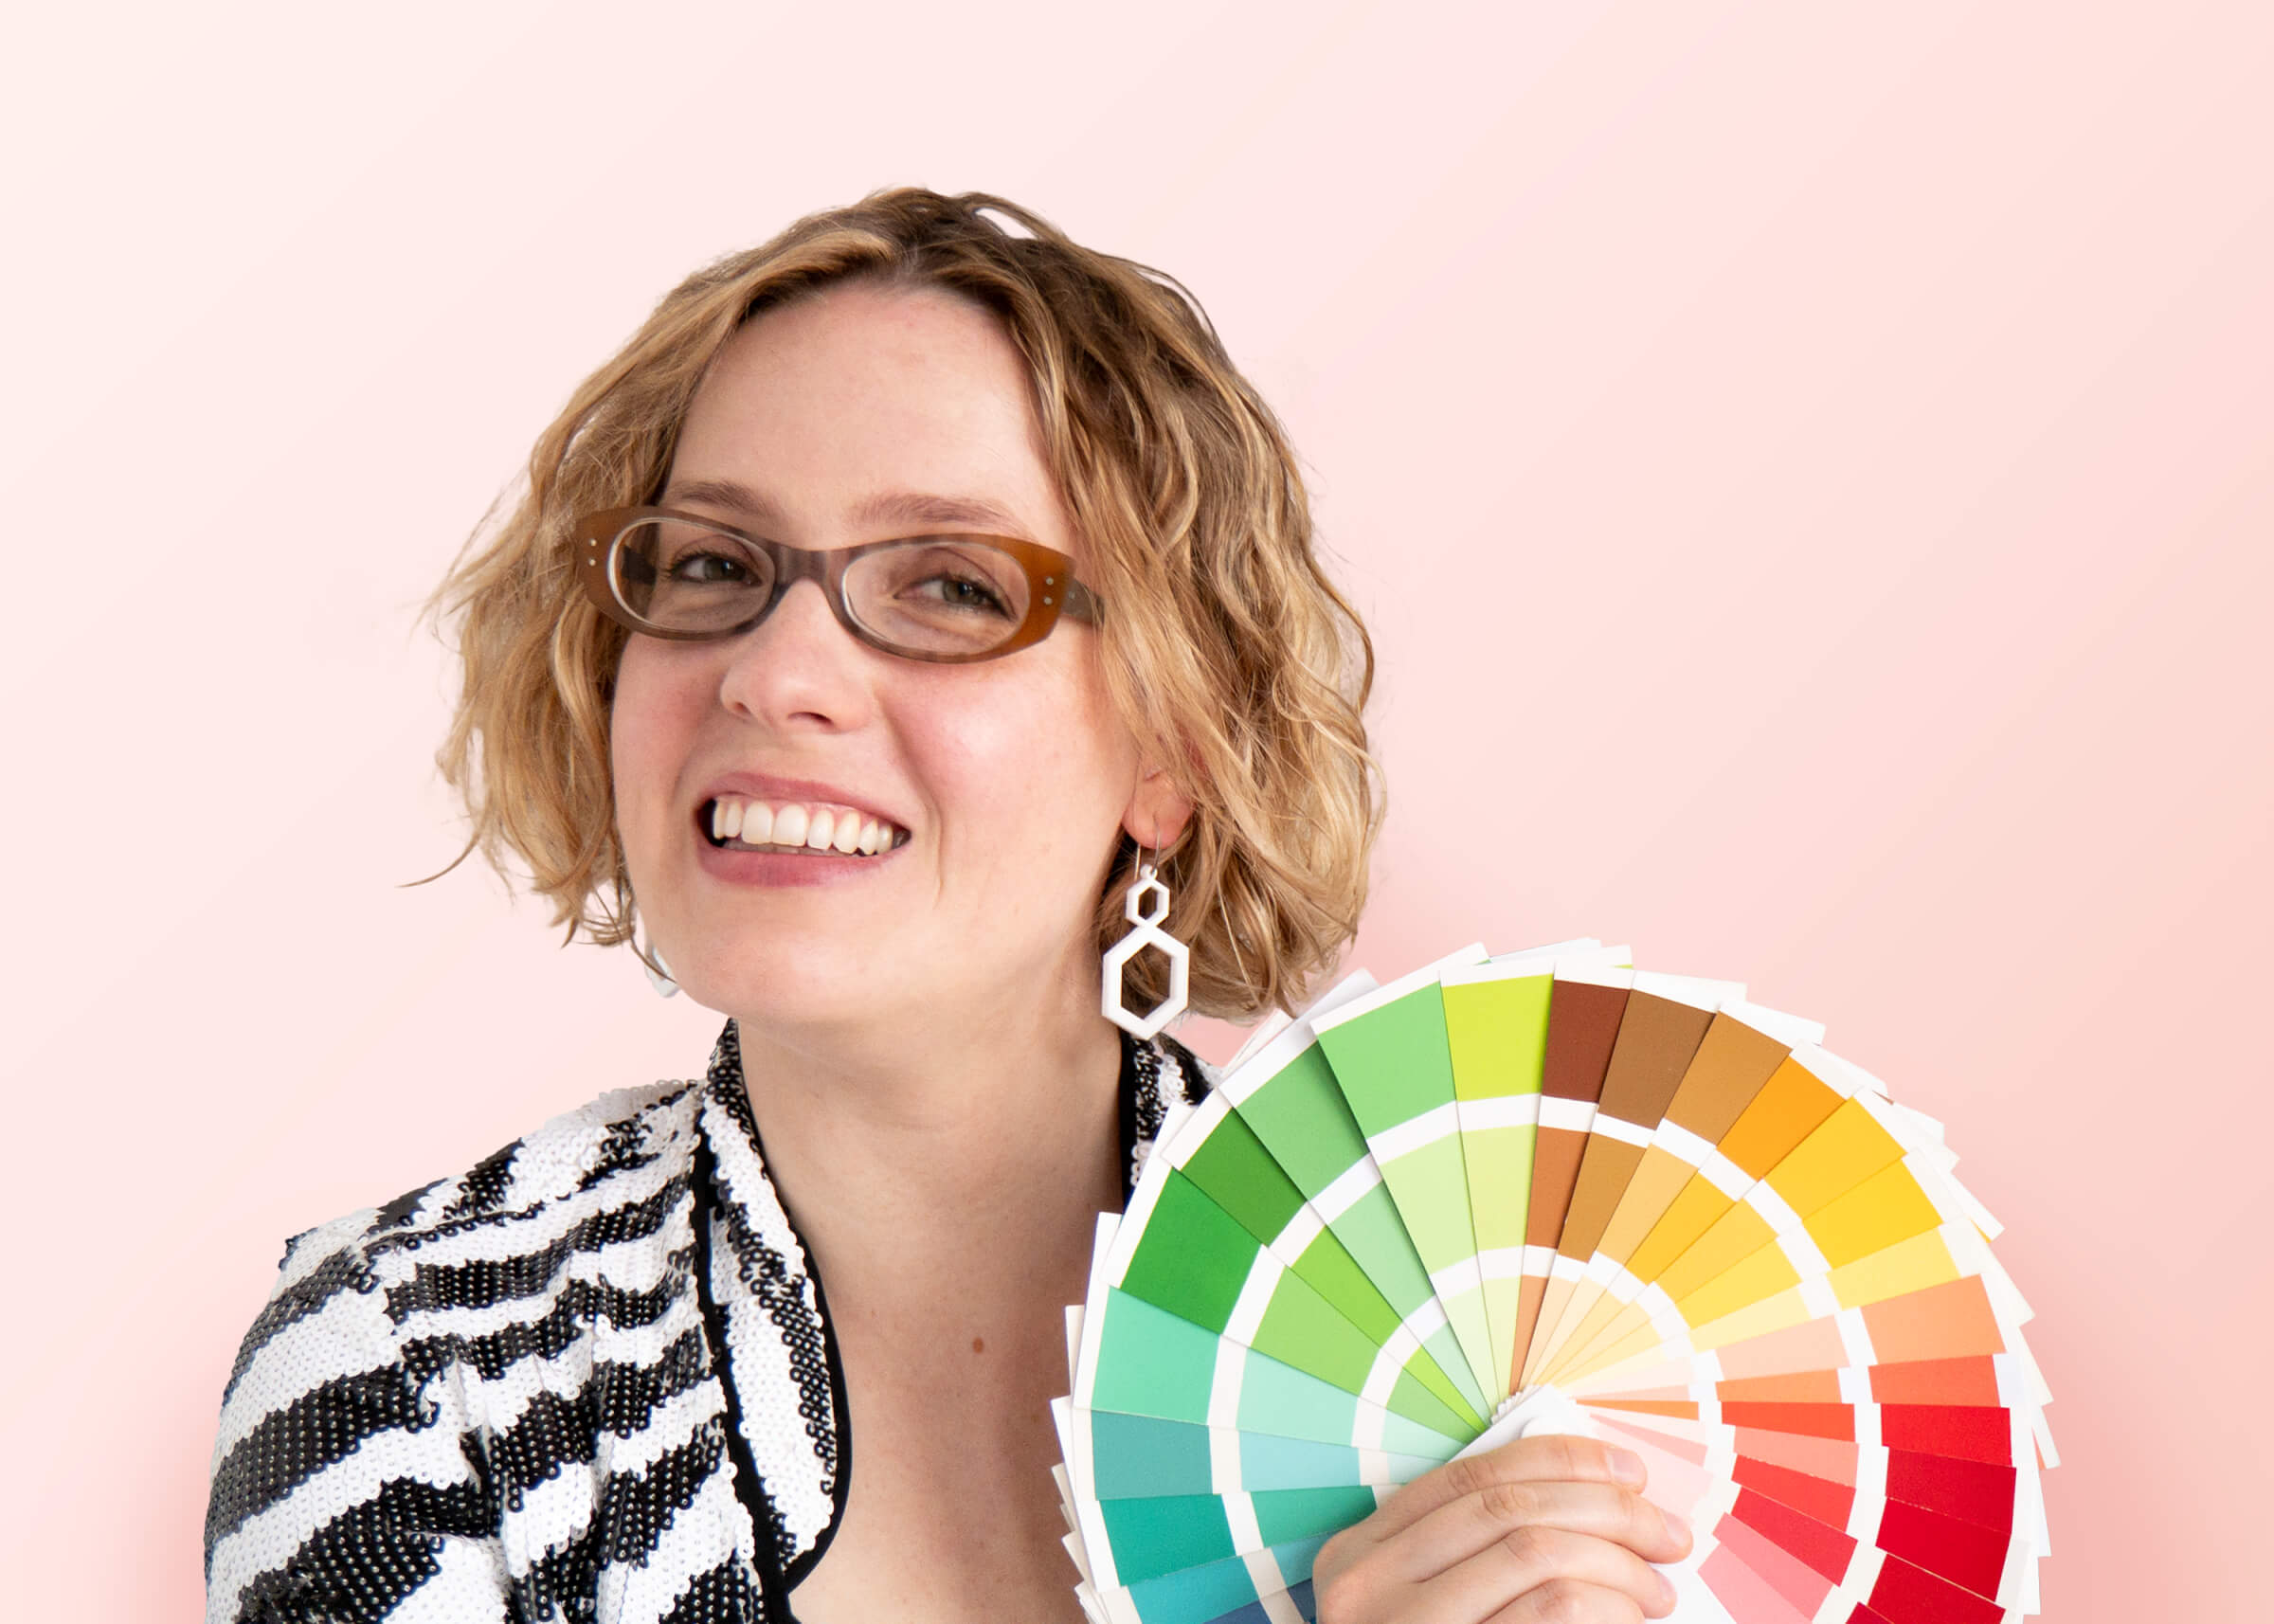 Alexandria Lawrence, Founder of ALSO in PINK. Podcast Cover Portrait Holding A Seasonal Spring Colour Fan